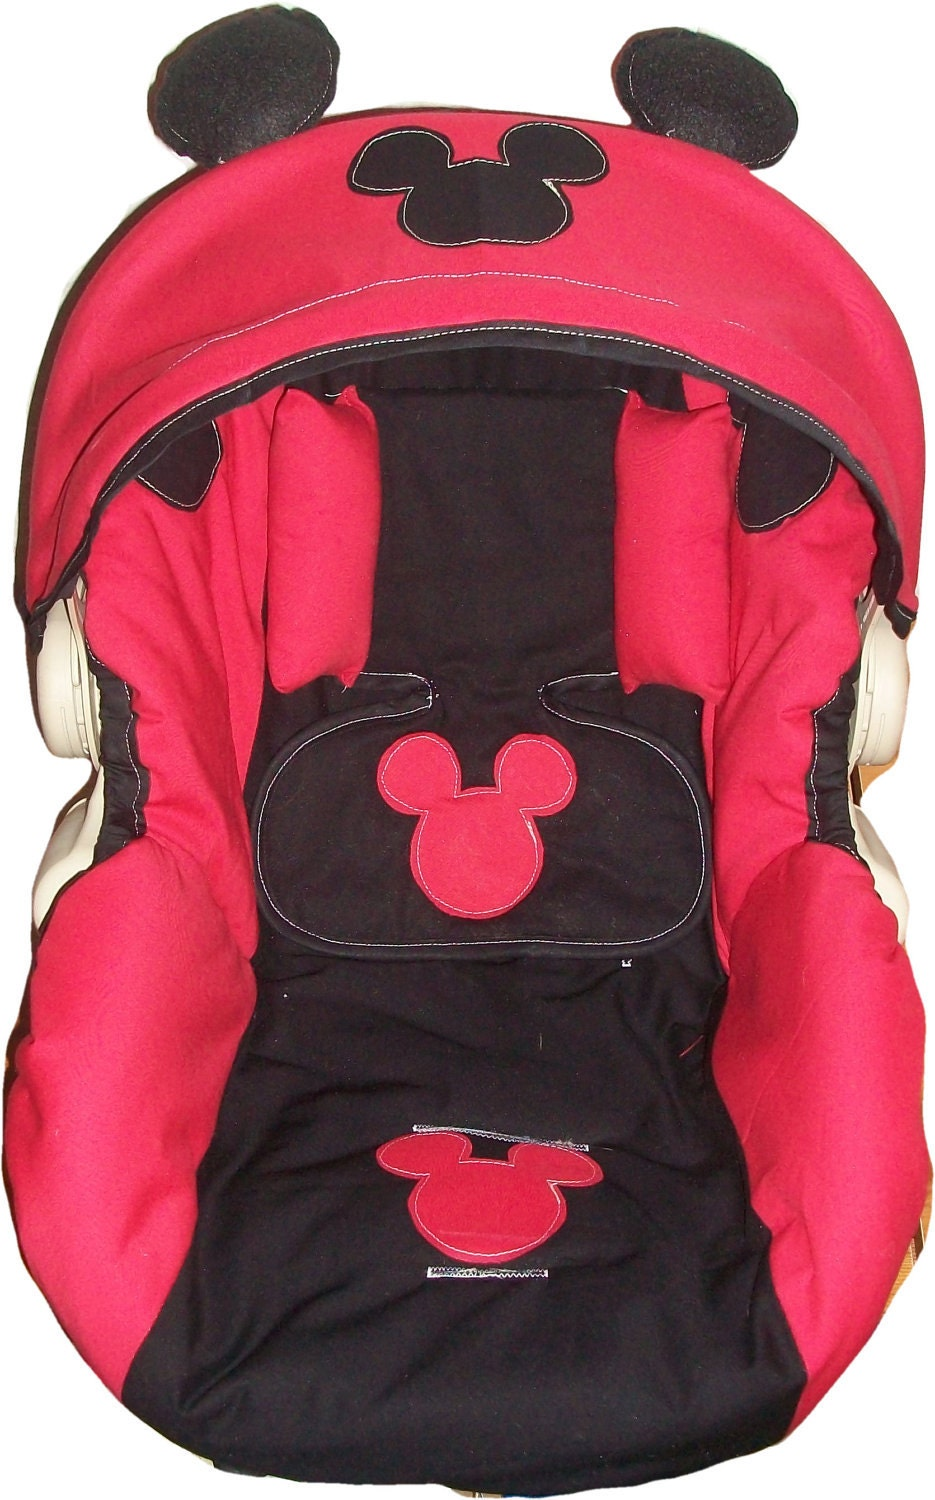 mickey mouse car seat covers at kmart release date price and specs. Black Bedroom Furniture Sets. Home Design Ideas